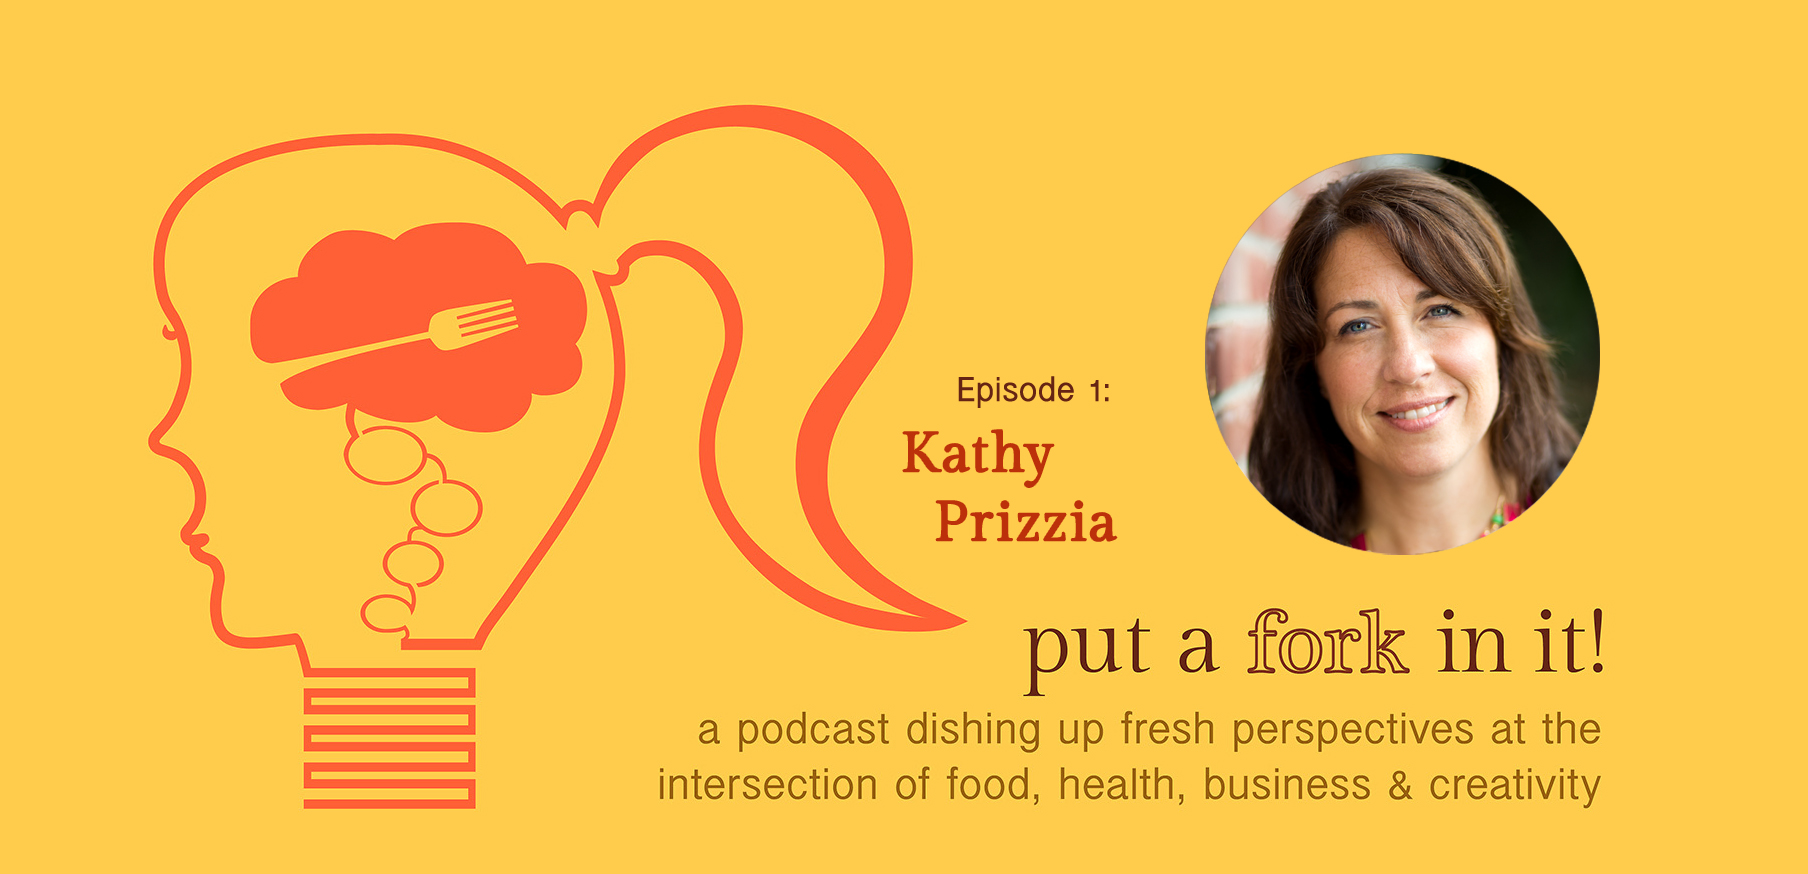 PAFII Episode 1: Kathy Prizzia, Executive Director, New Paltz Regional Chamber of Commerce